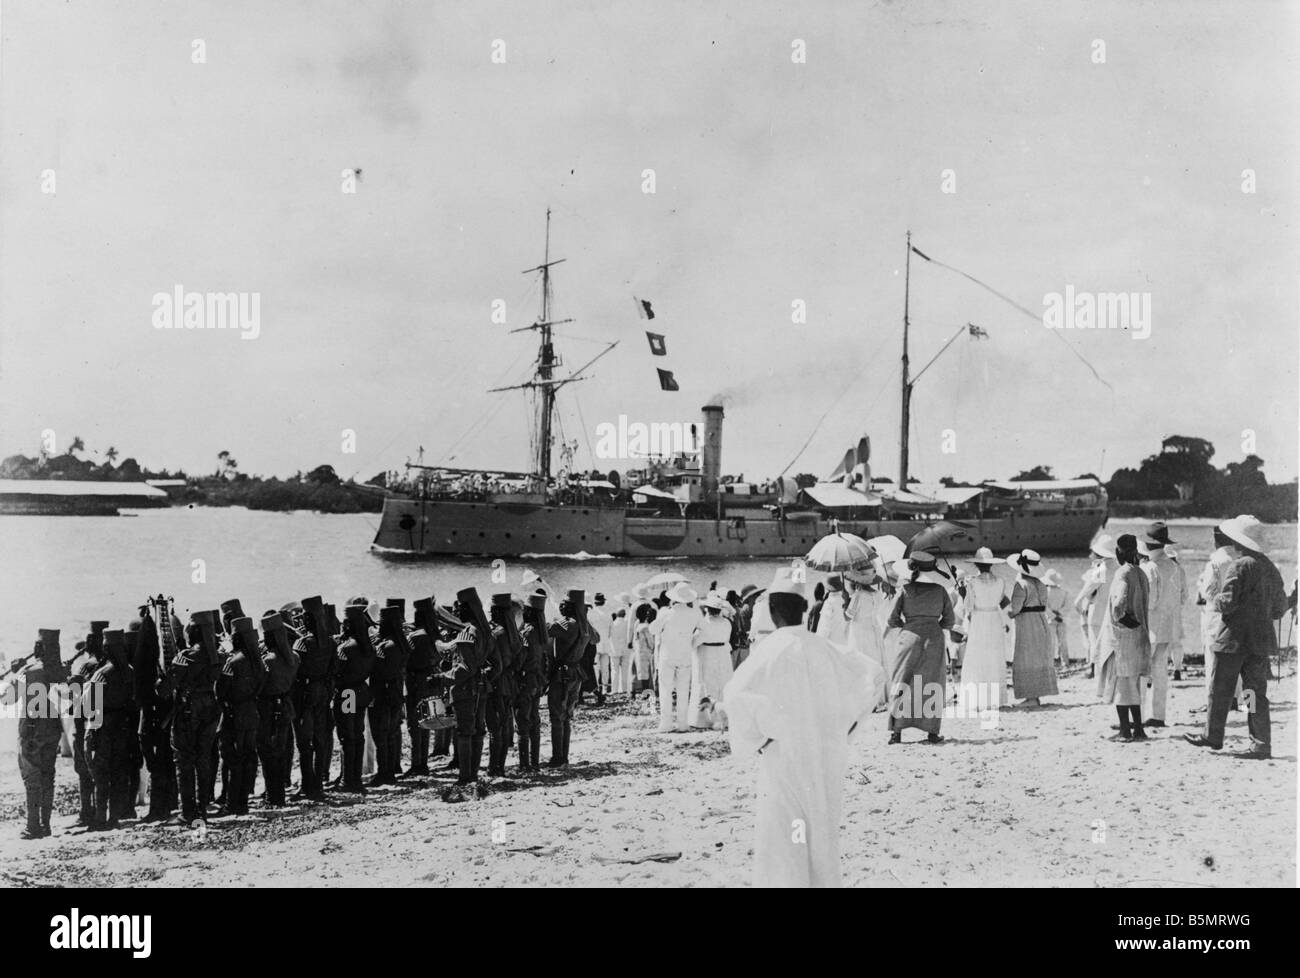 9AF 1914 0 0 A8 1 E S M S Seeadler Dar es Salaam Photo German East Afica today Tanzania as German colony 1884 1920 - Stock Image